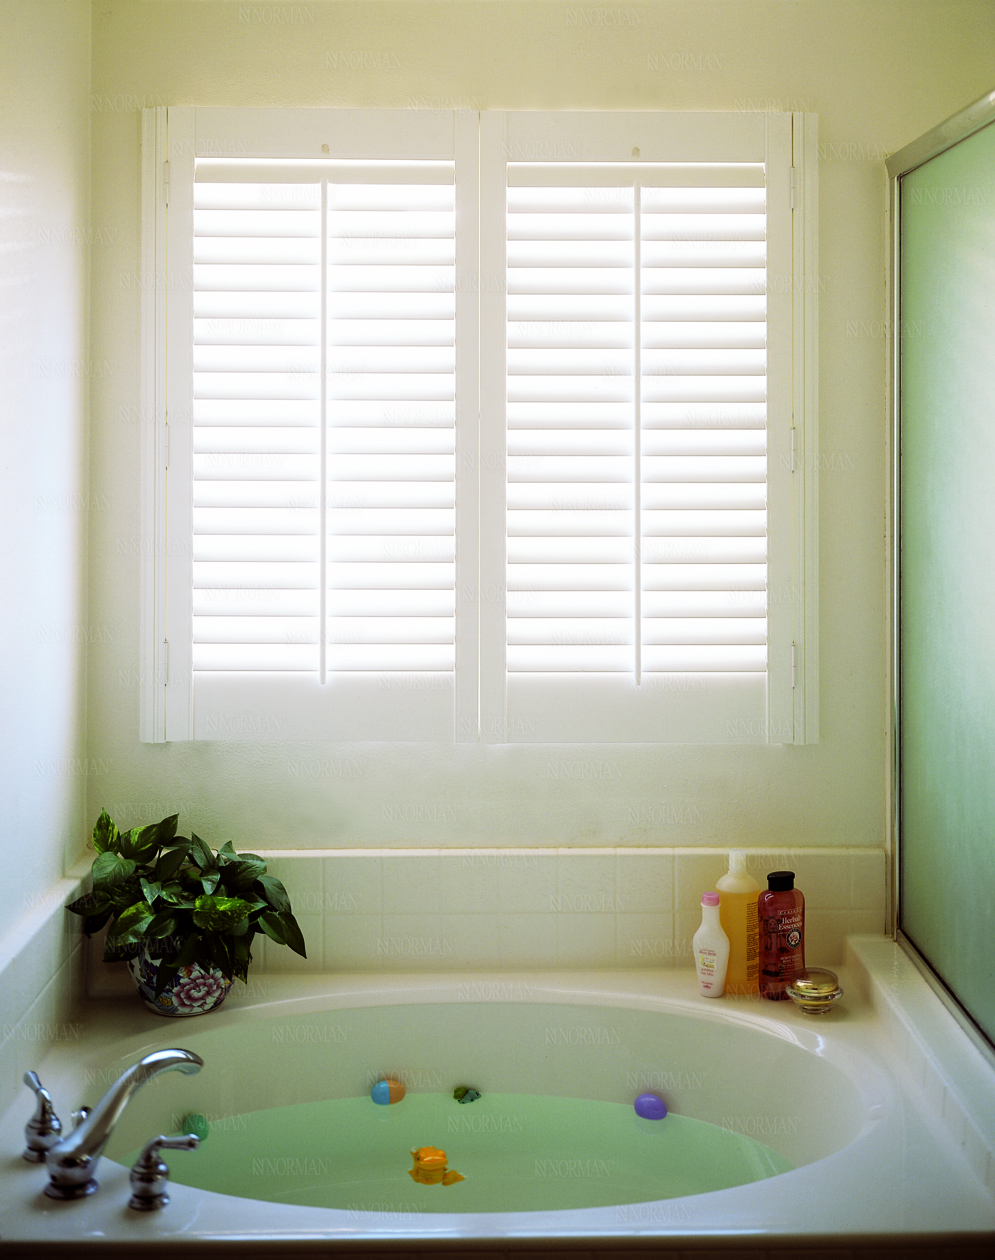 Woodbury Wht Shutters Bath.JPG